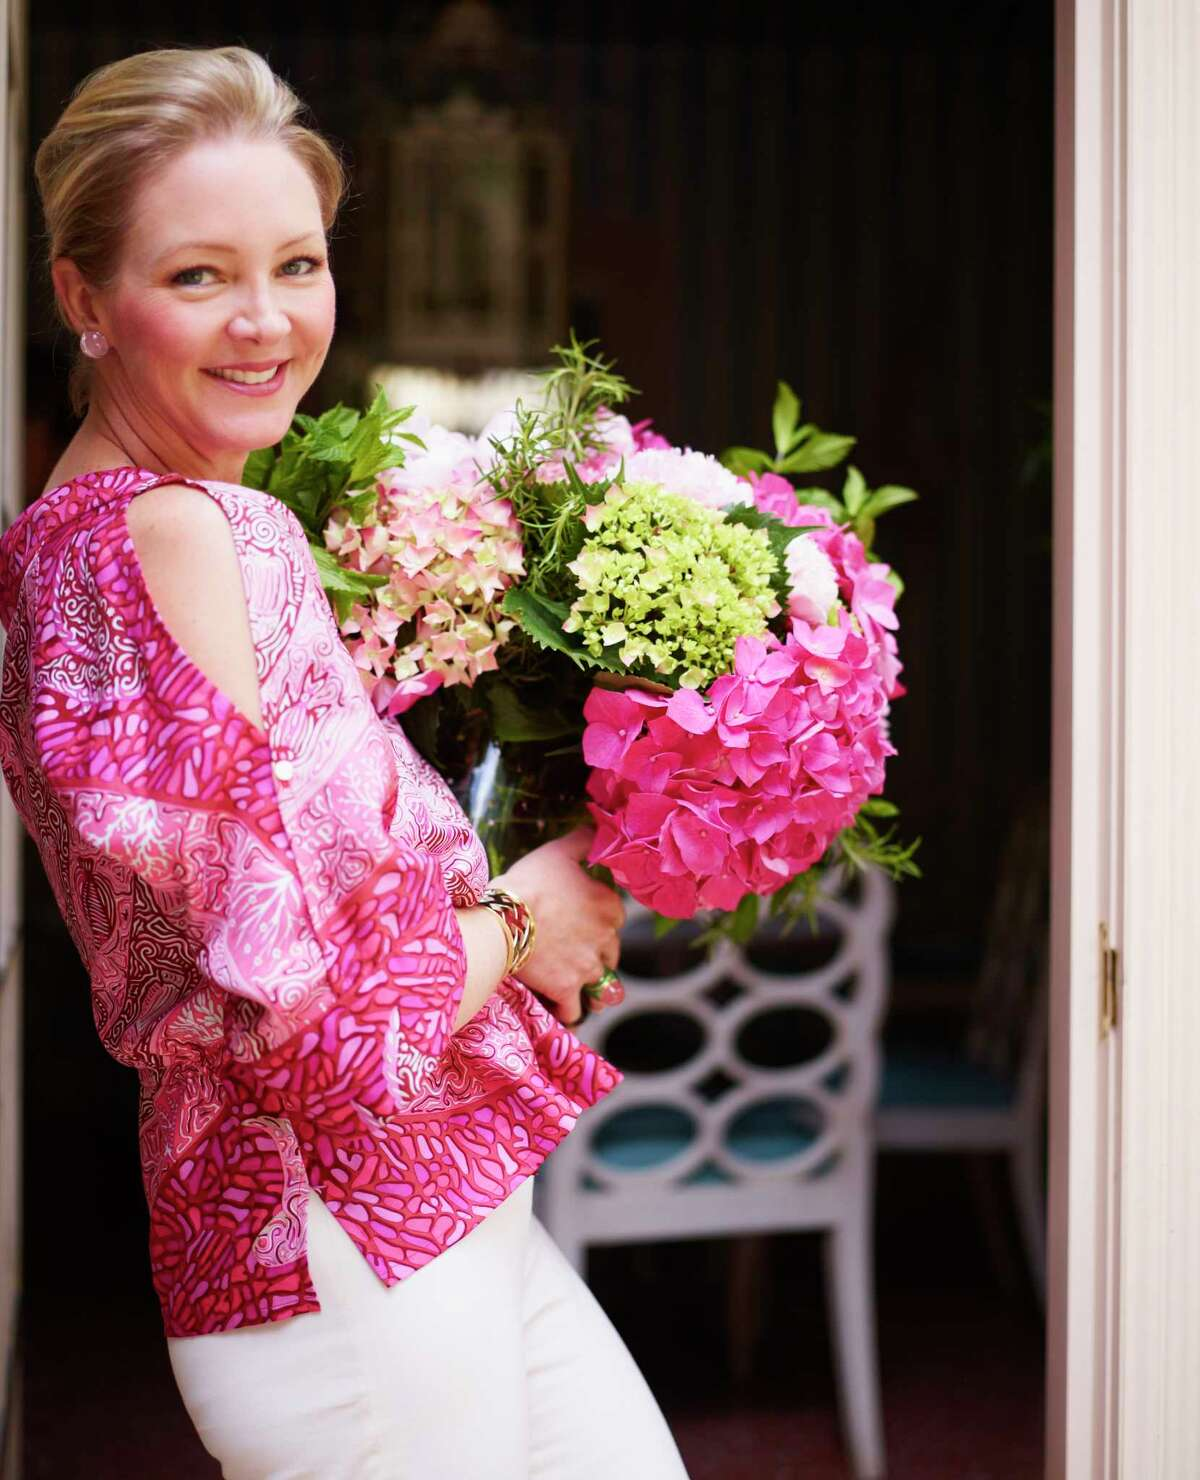 """Flowers are an essential part of any party, says Danielle Rollins, the author of """"Soiree: Entertaining with Style."""""""